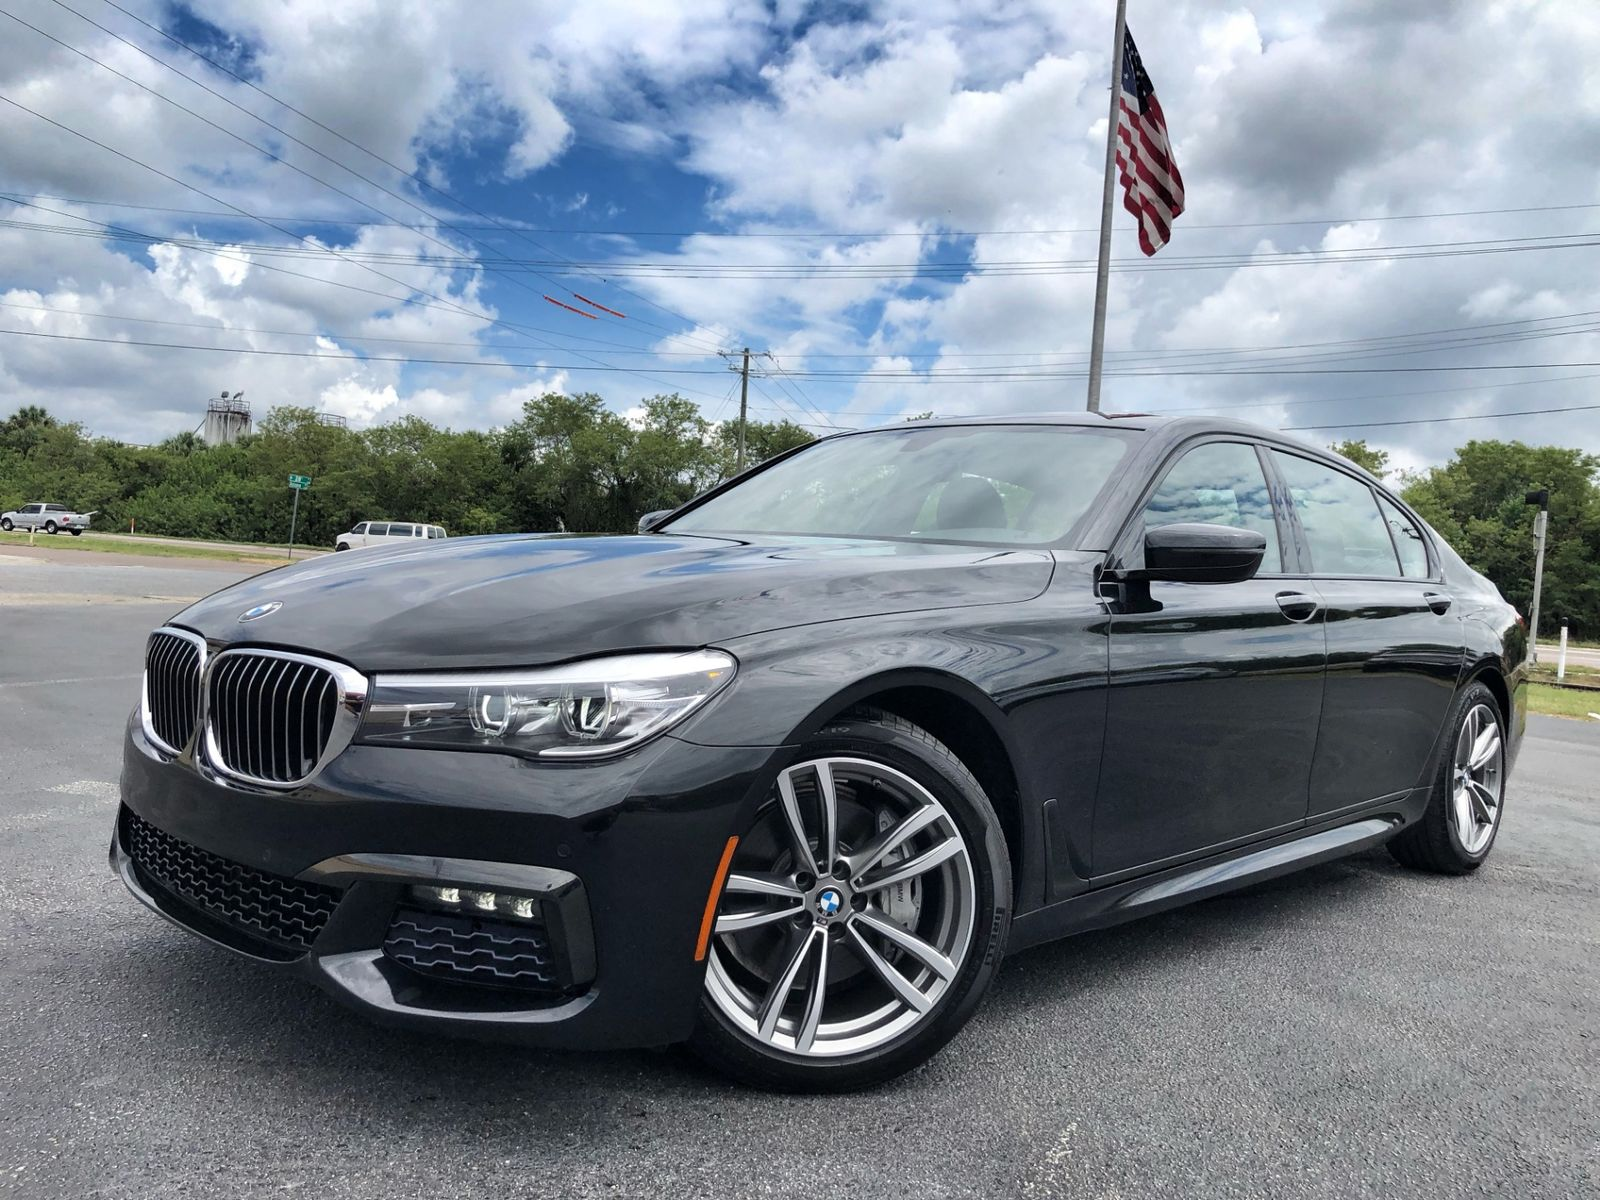 small resolution of 2018 bmw 740i m sport m sport 1 owner carfax cert 88k new florida bayshore automotive